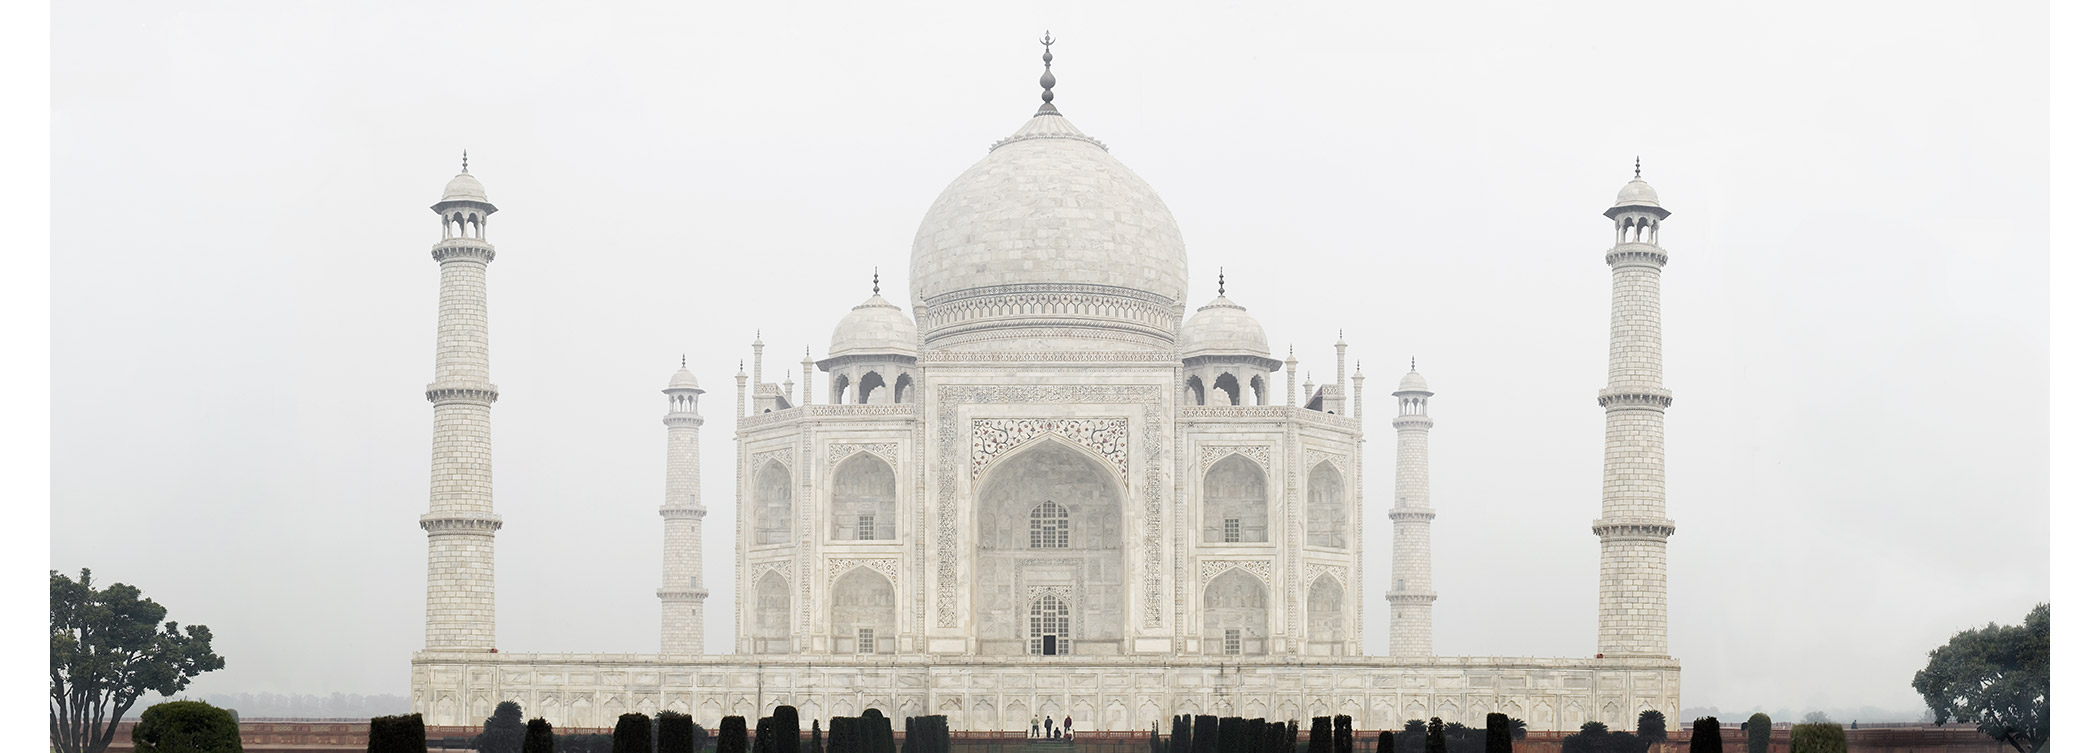 Paul Grundy. The Taj  Mahal